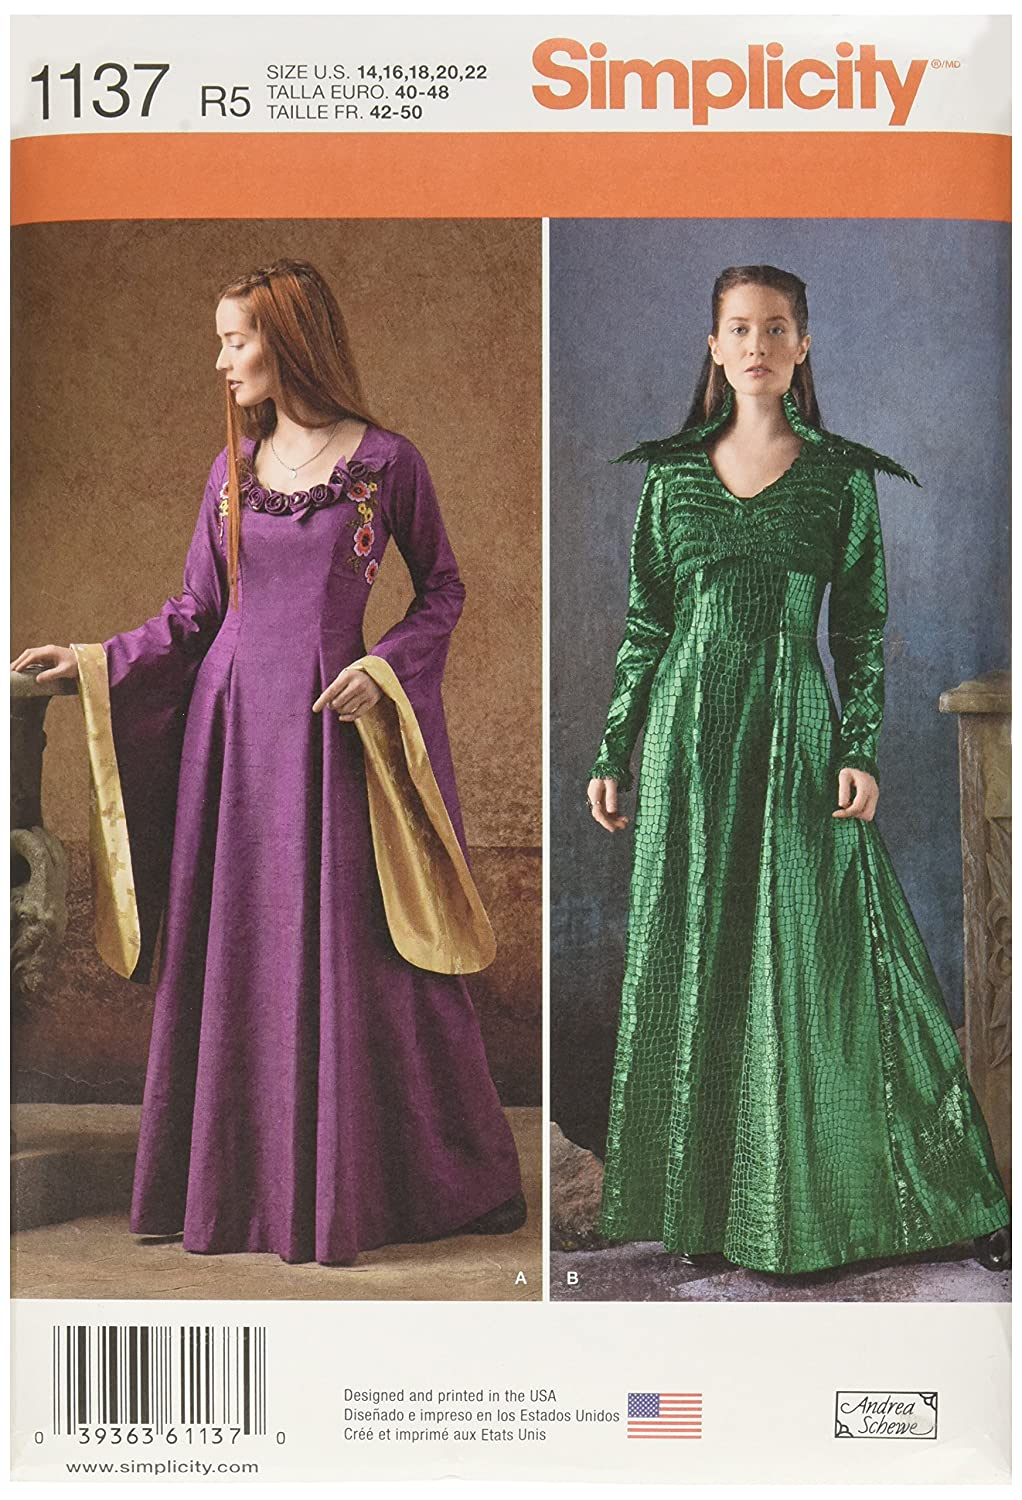 Simplicity Patterns 1137 Misses' Medieval Fantasy Costumes, R5 (14-16-18-20-22) OUTLOOK GROUP CORP